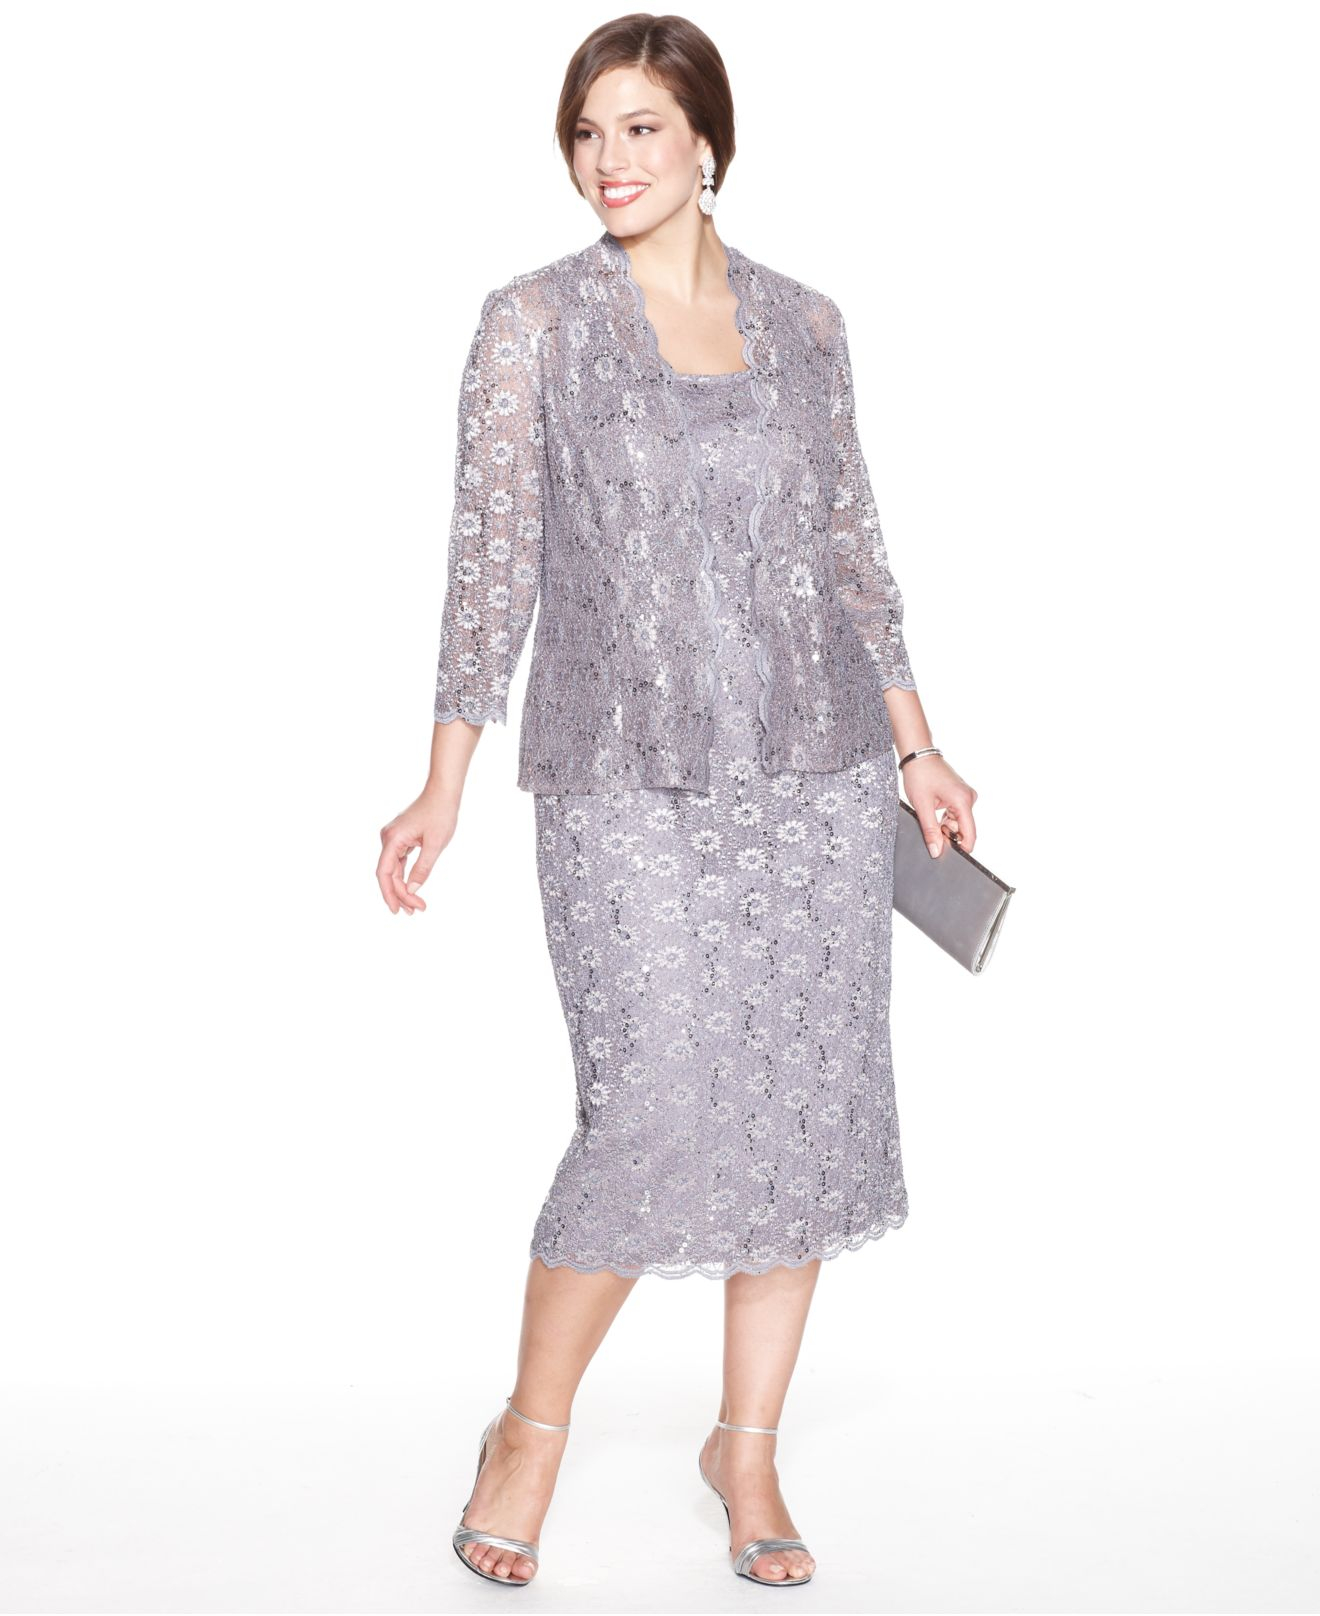 cdbab797c1 Alex Evenings Plus Size Sequin Lace Dress And Jacket in Gray - Lyst